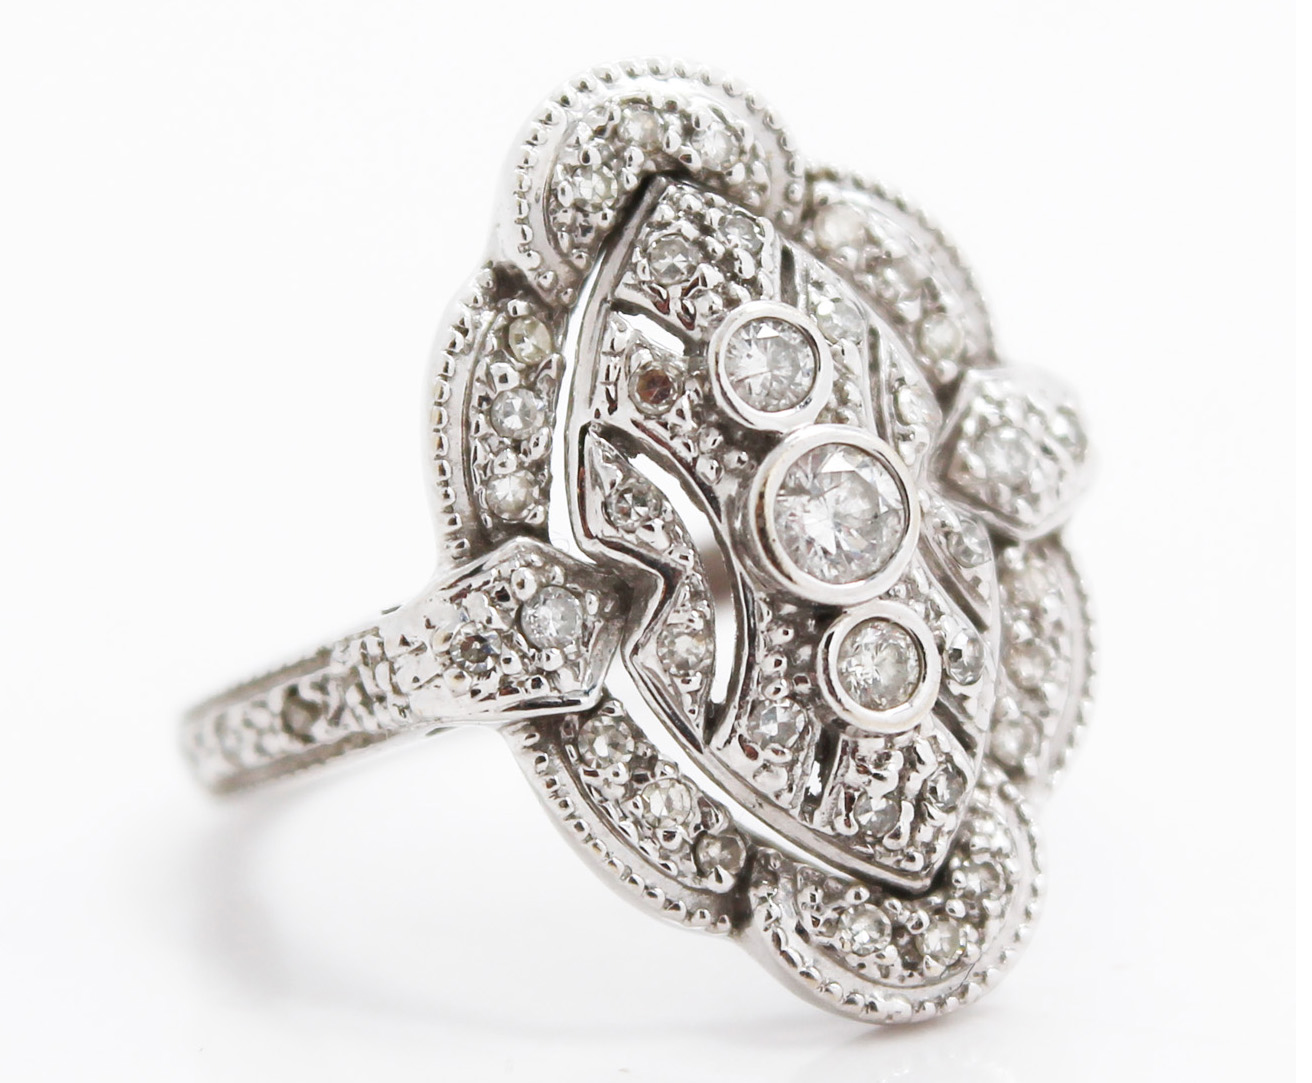 Antique Art Deco Diamond and White Gold Ring